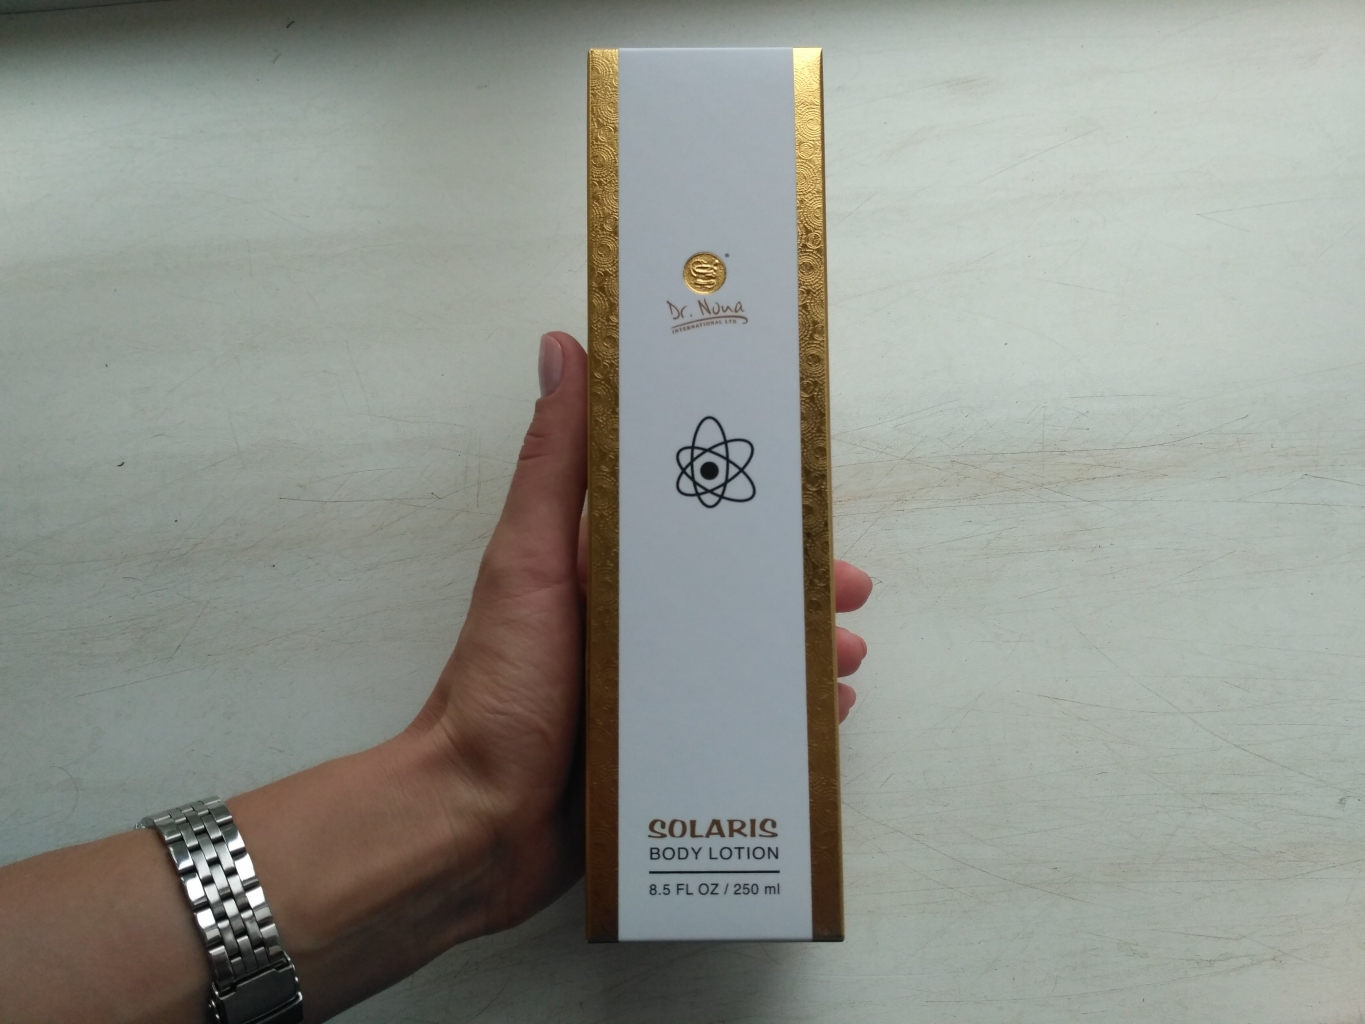 Лосьон для тела Солярис Доктор Нона/ Body Lotion Solaris Dr.Nona